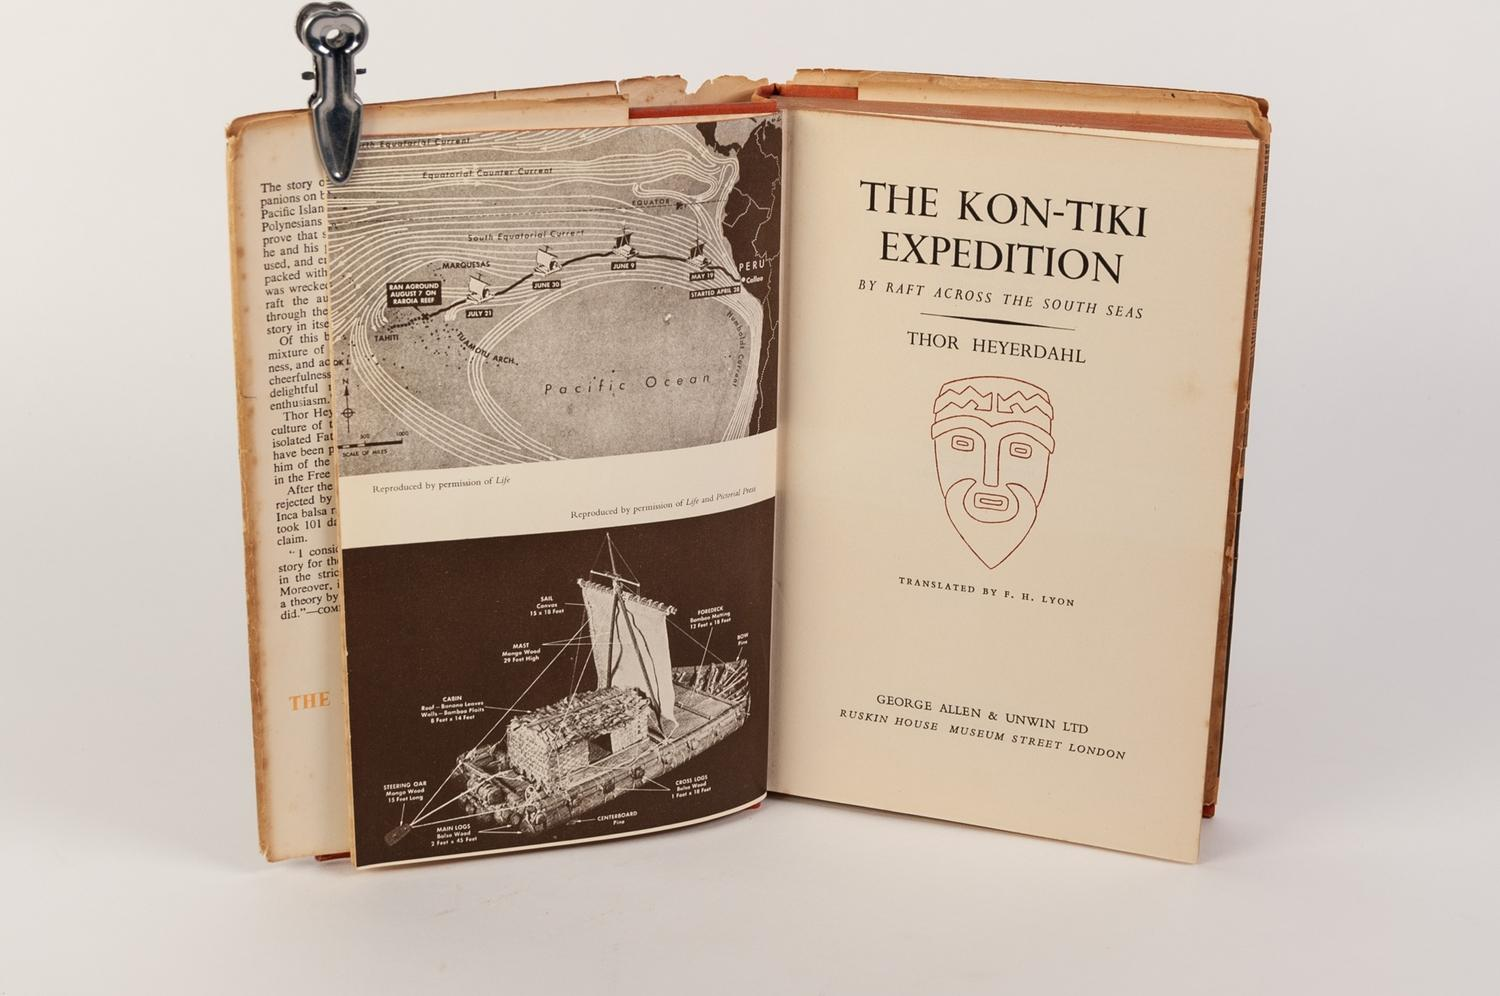 Lot 73 - TRAVEL EXPLORATION-Thor Heyerdahl- The Kon Tiki Expedition, published by Allen Unwin, 1950 1st